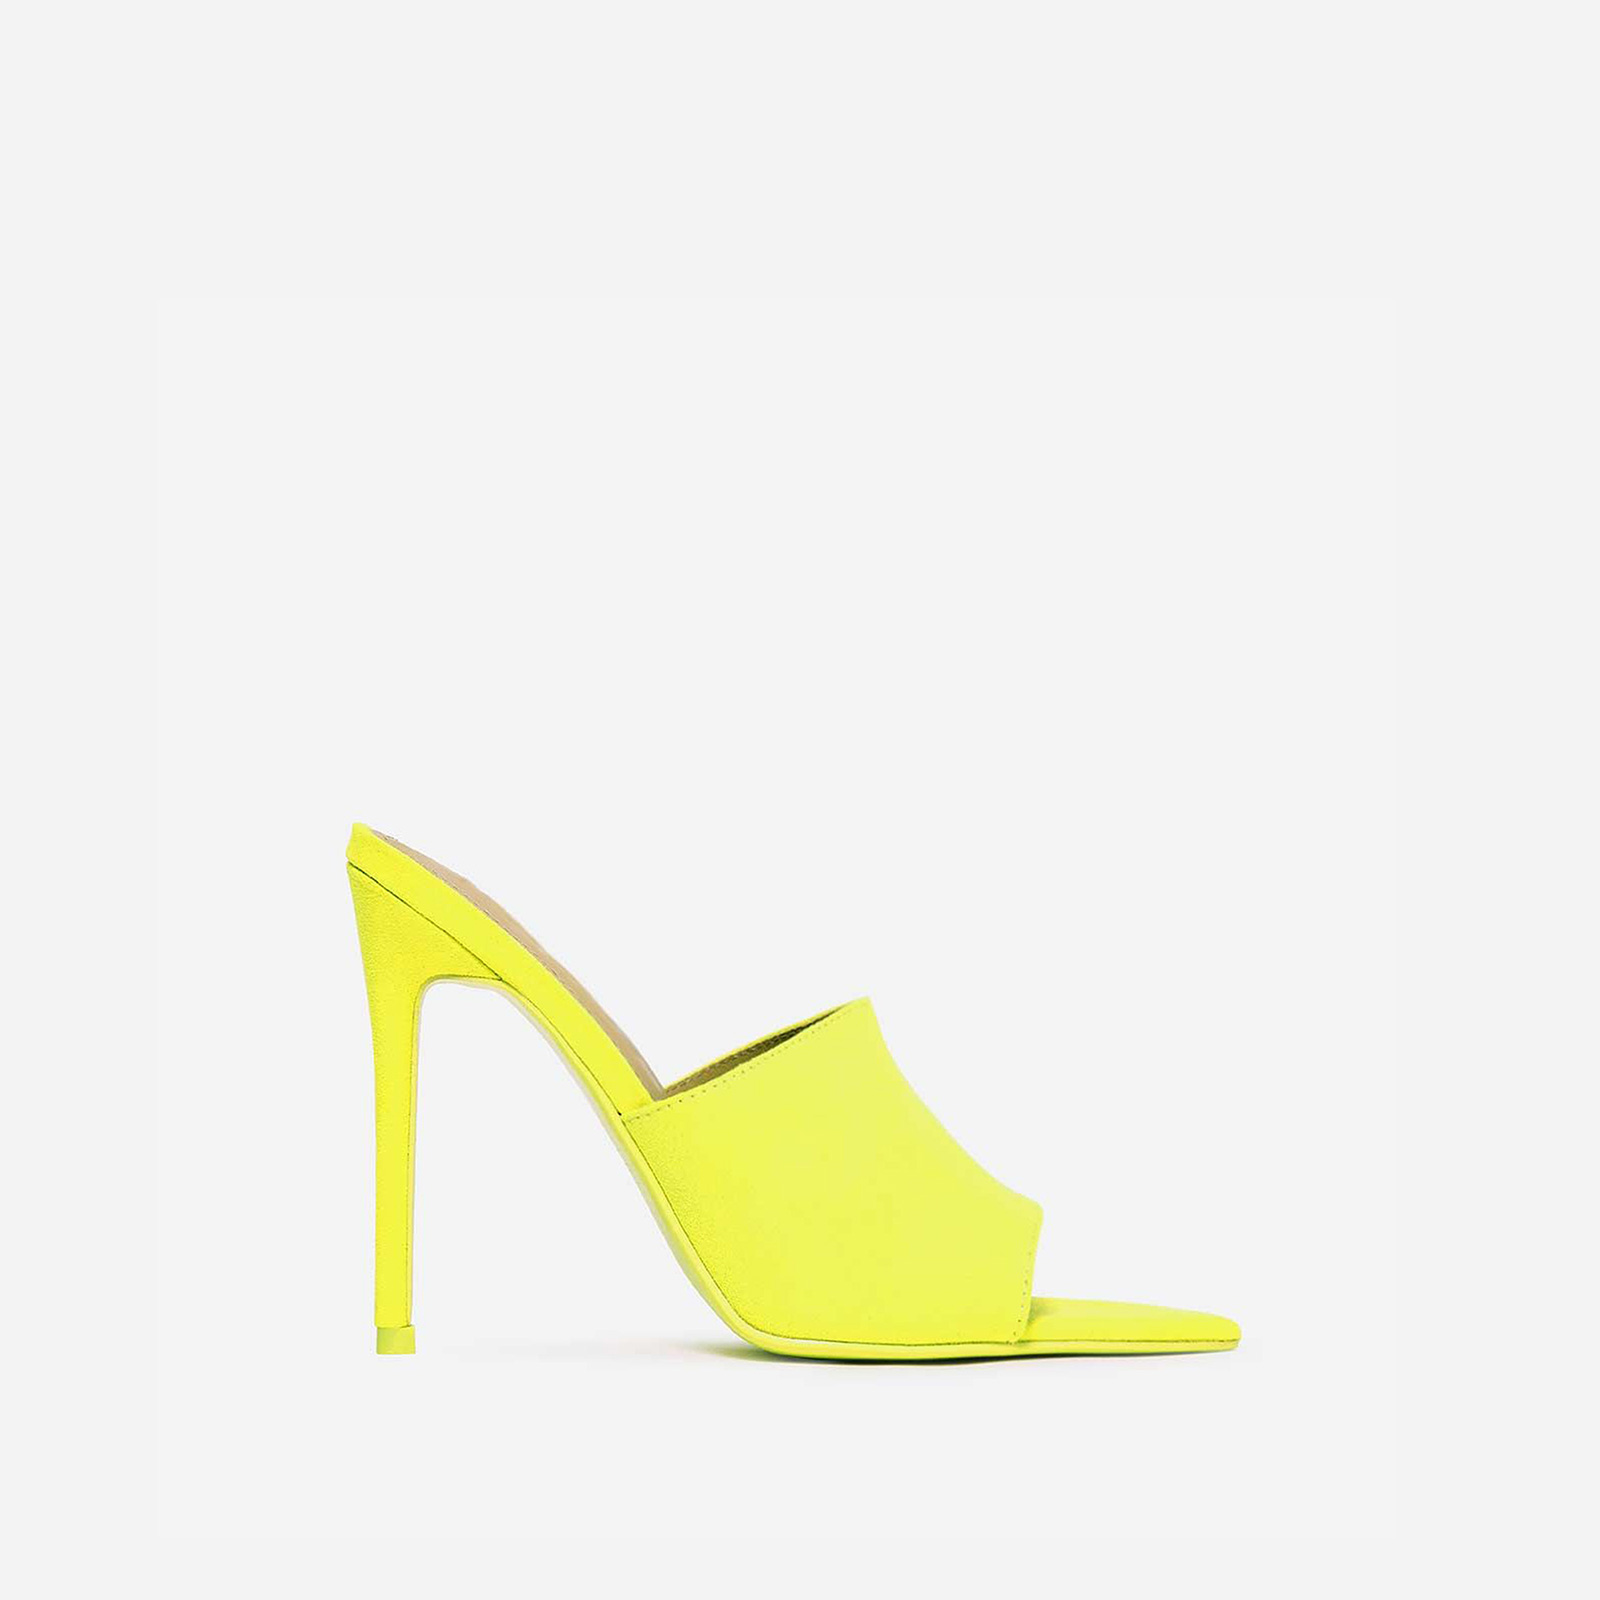 075887475f1f Cece Pointed Peep Toe Mule In Neon Yellow Faux Suede